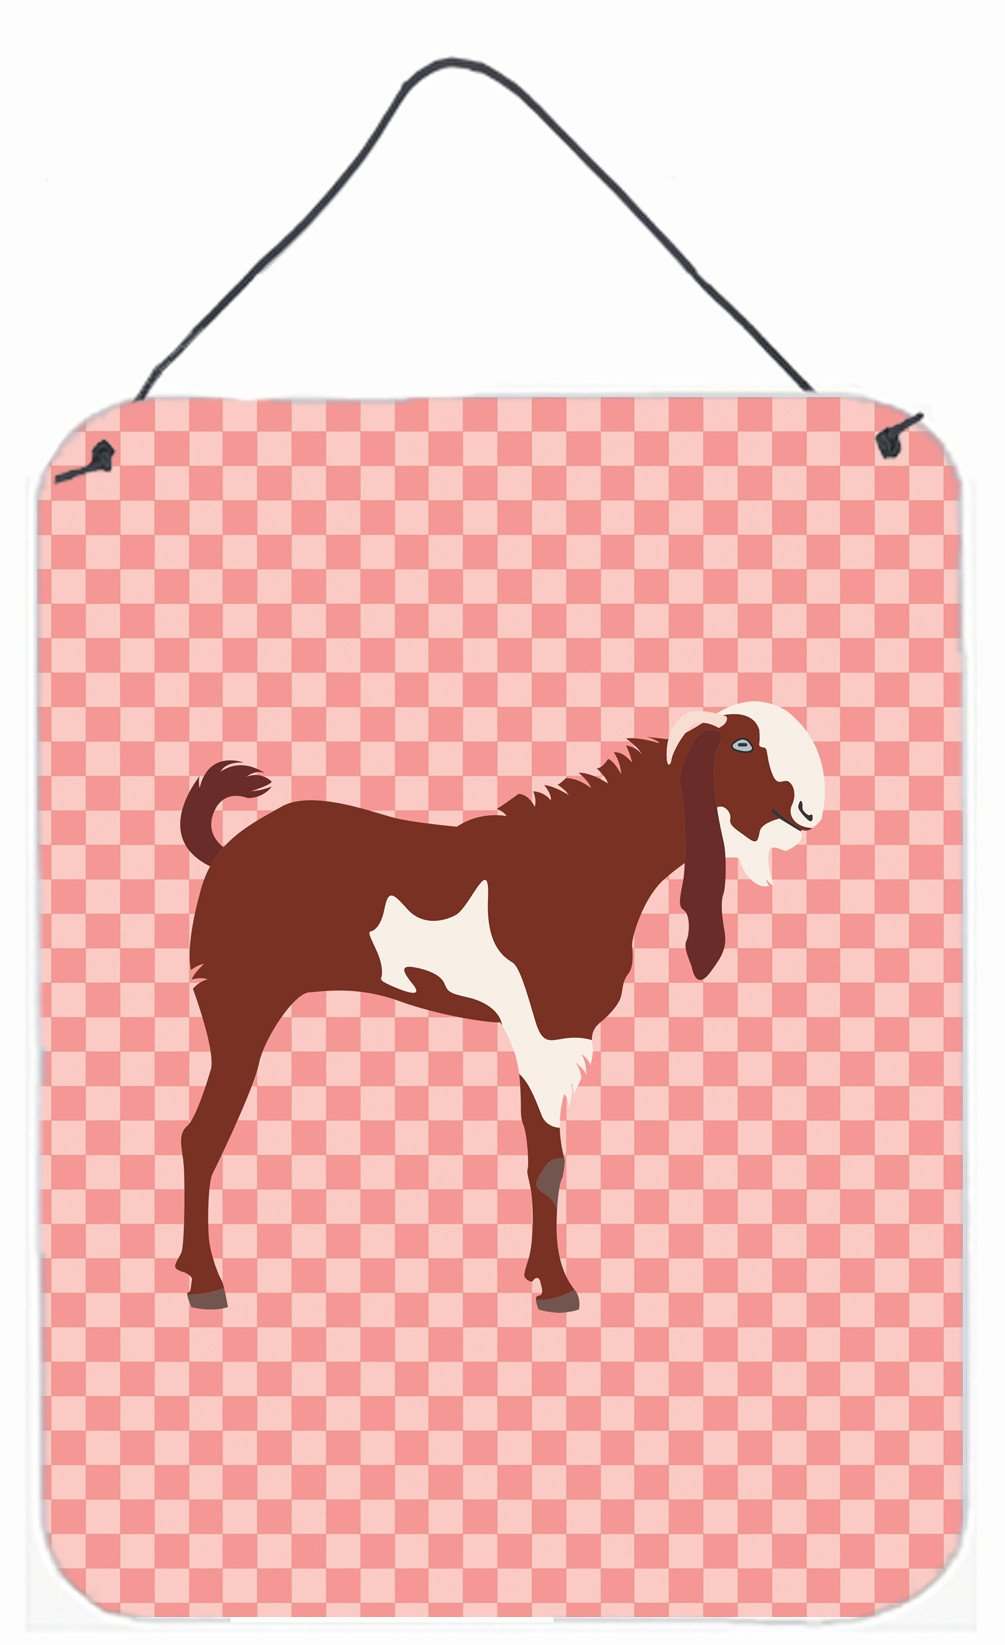 Jamnapari Goat Pink Check Wall or Door Hanging Prints BB7890DS1216 by Caroline's Treasures